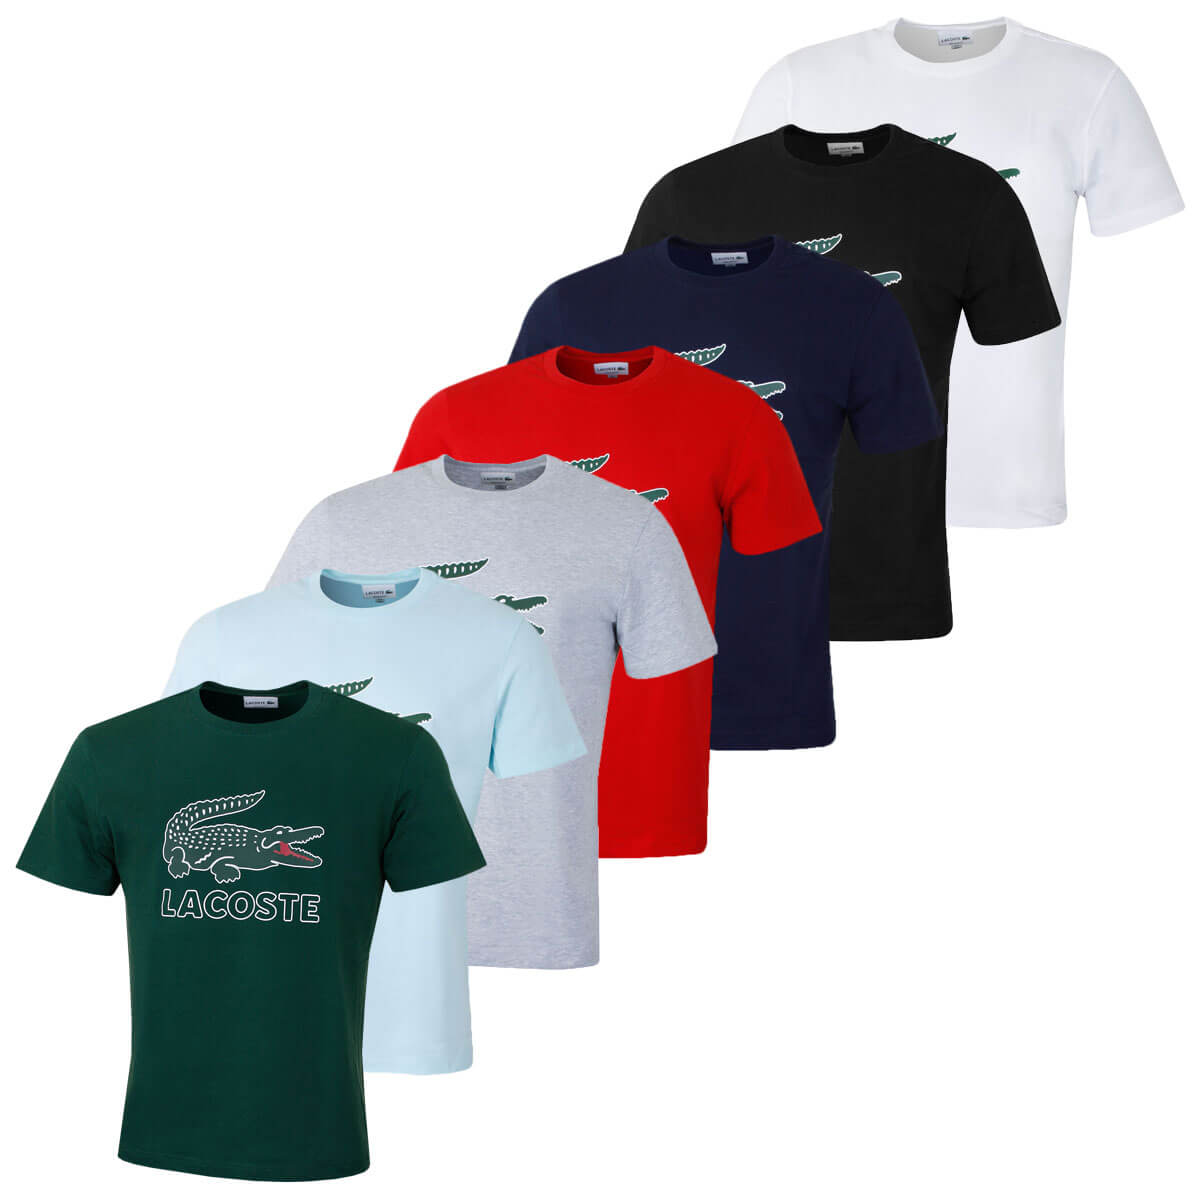 40619f9c Details about Lacoste Mens 2019 Graphic Jersey Print Croc Cotton Regular  Fit Crew Neck T-Shirt